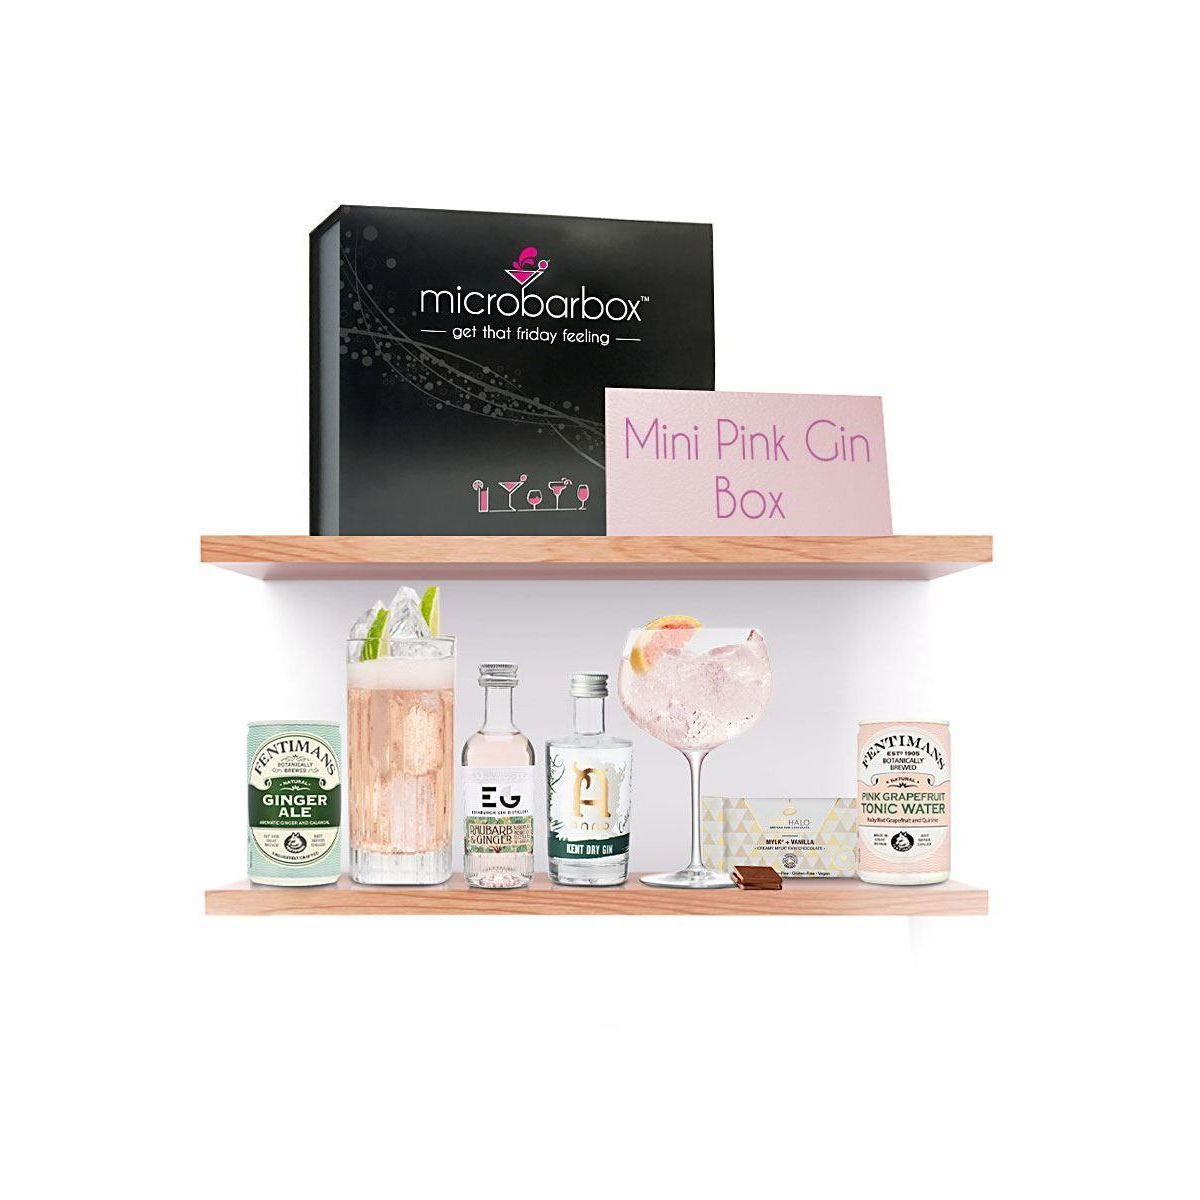 Microbarbox Mini Pink Gin Box